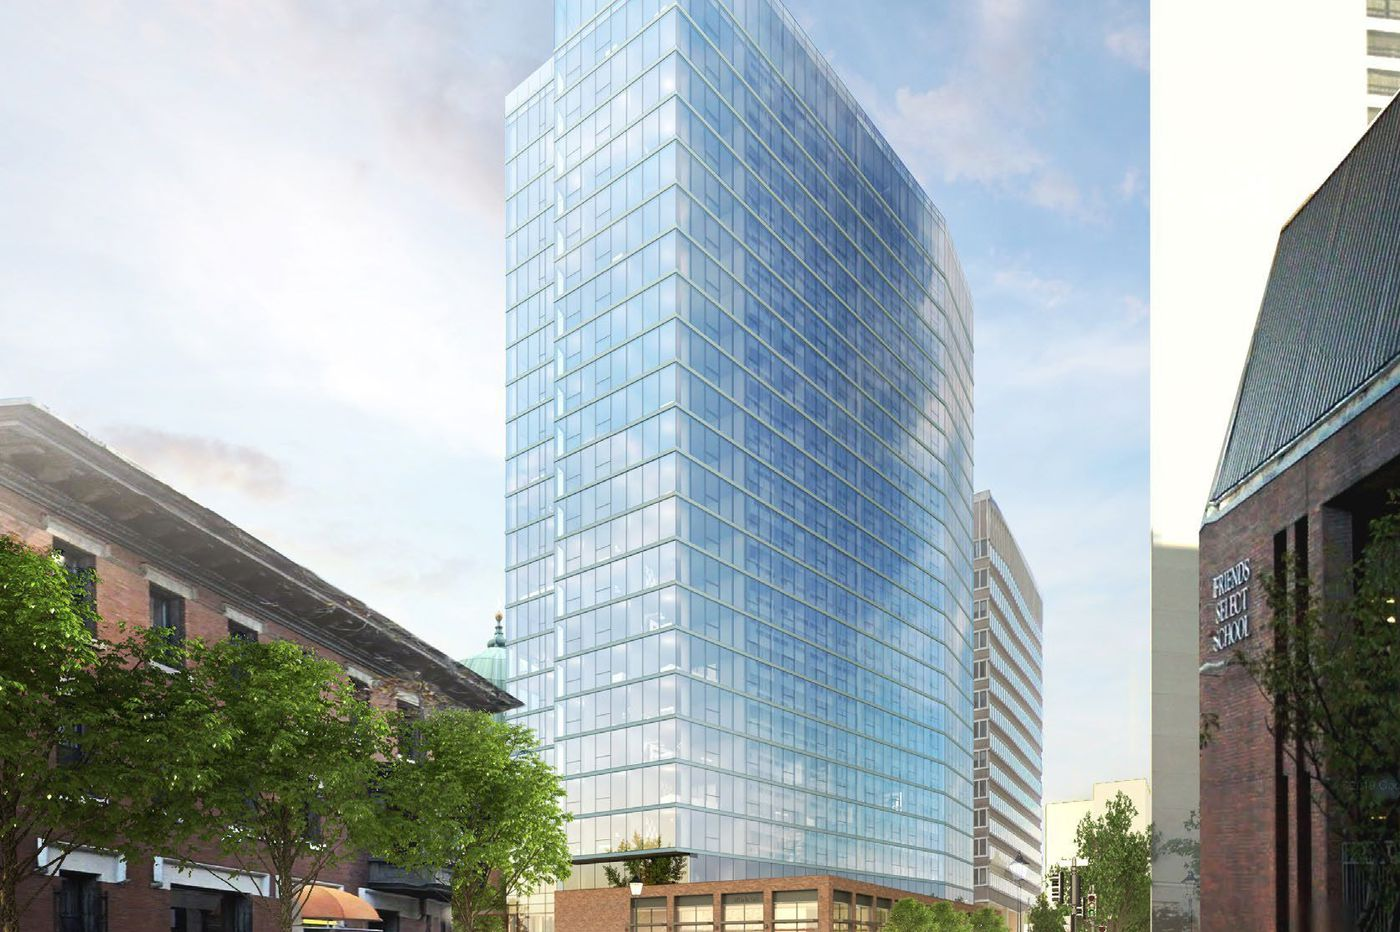 Developer plans 23-story residential tower in first phase of Philly Cathedral-property project